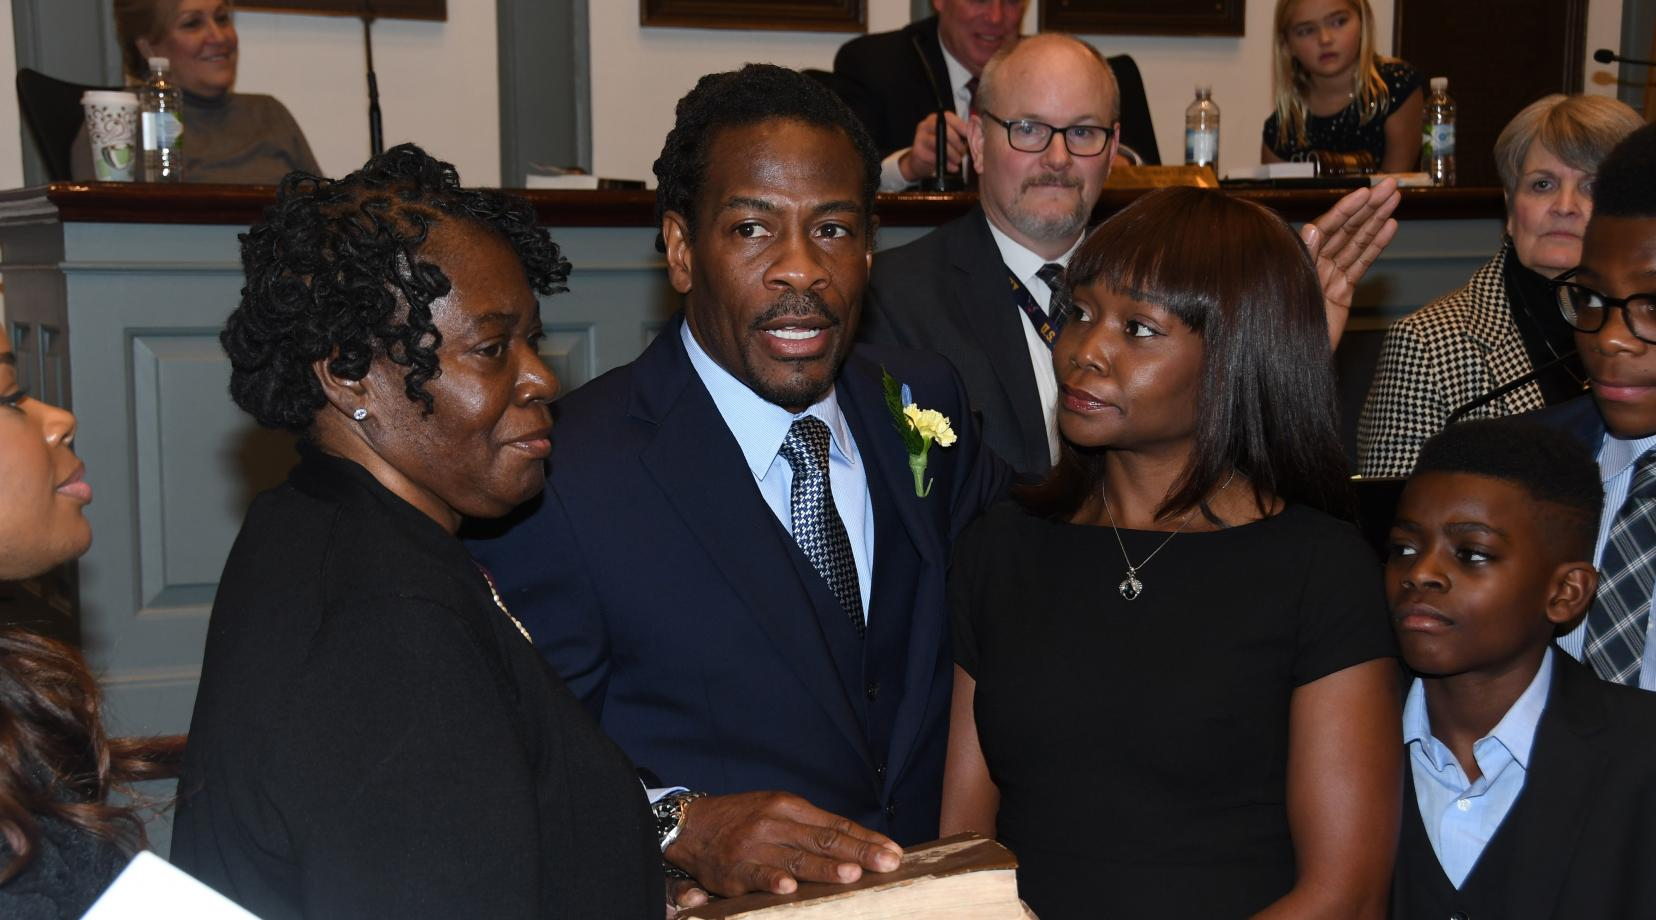 Newly elected Rep. Nnamdi Chukwuocha, surrounded by his family, is sworn in as a member of the Delaware House of Representatives by Delaware Supreme Court Justice James T. Vaughn, Jr. The new legislator's mother Mary Jones (l) holds the bible while his wife Chica stands to his right.